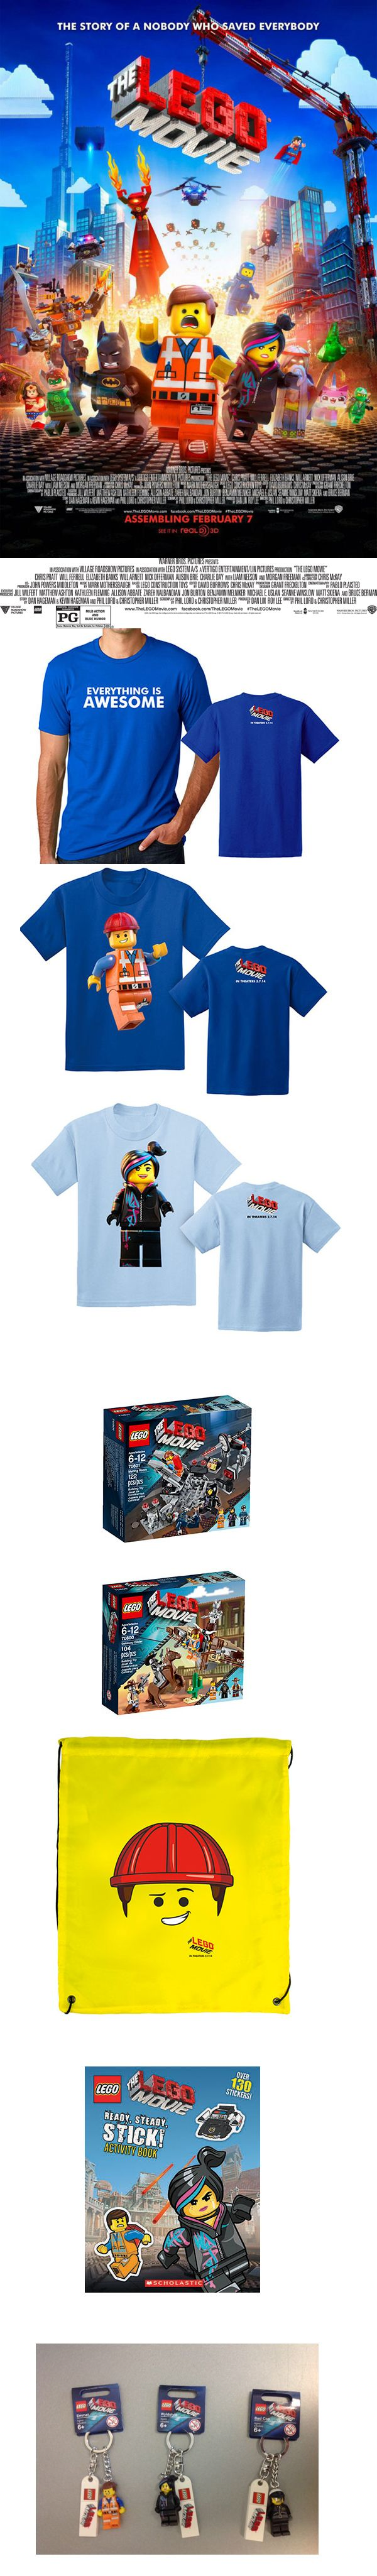 The Lego Movie Giveaway Collider Tee